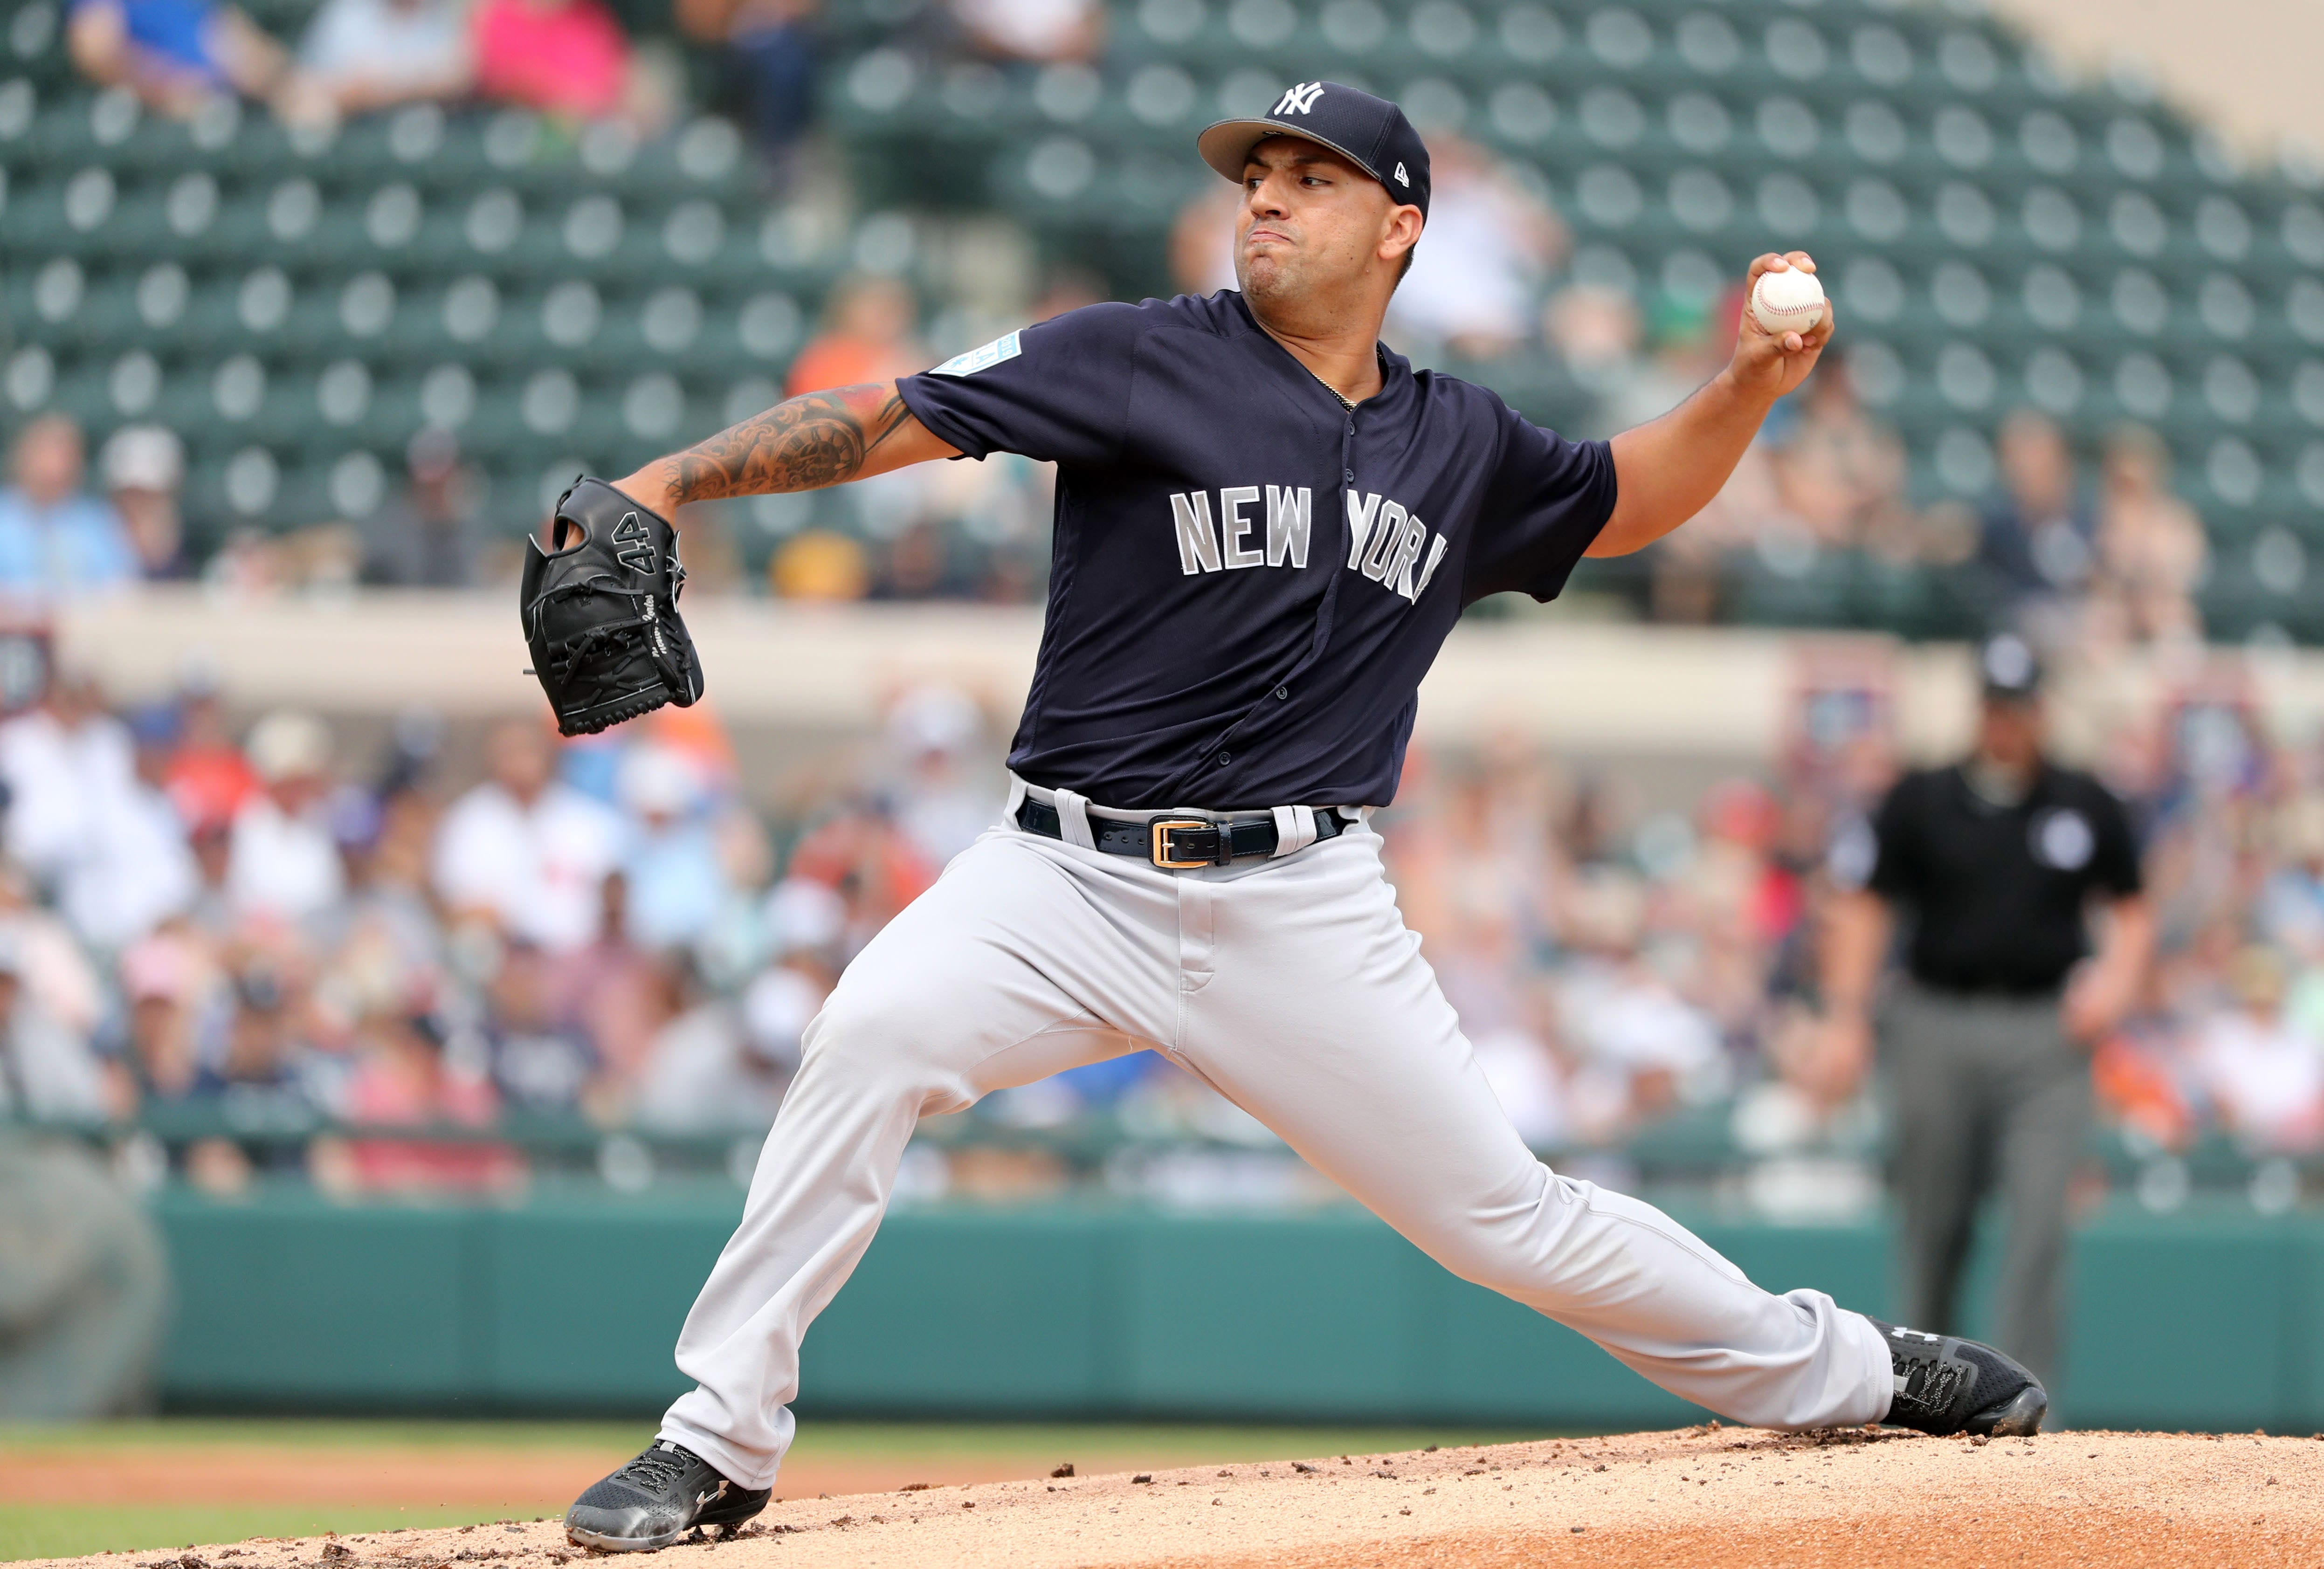 New York Yankees, Nestor Cortes Jr.